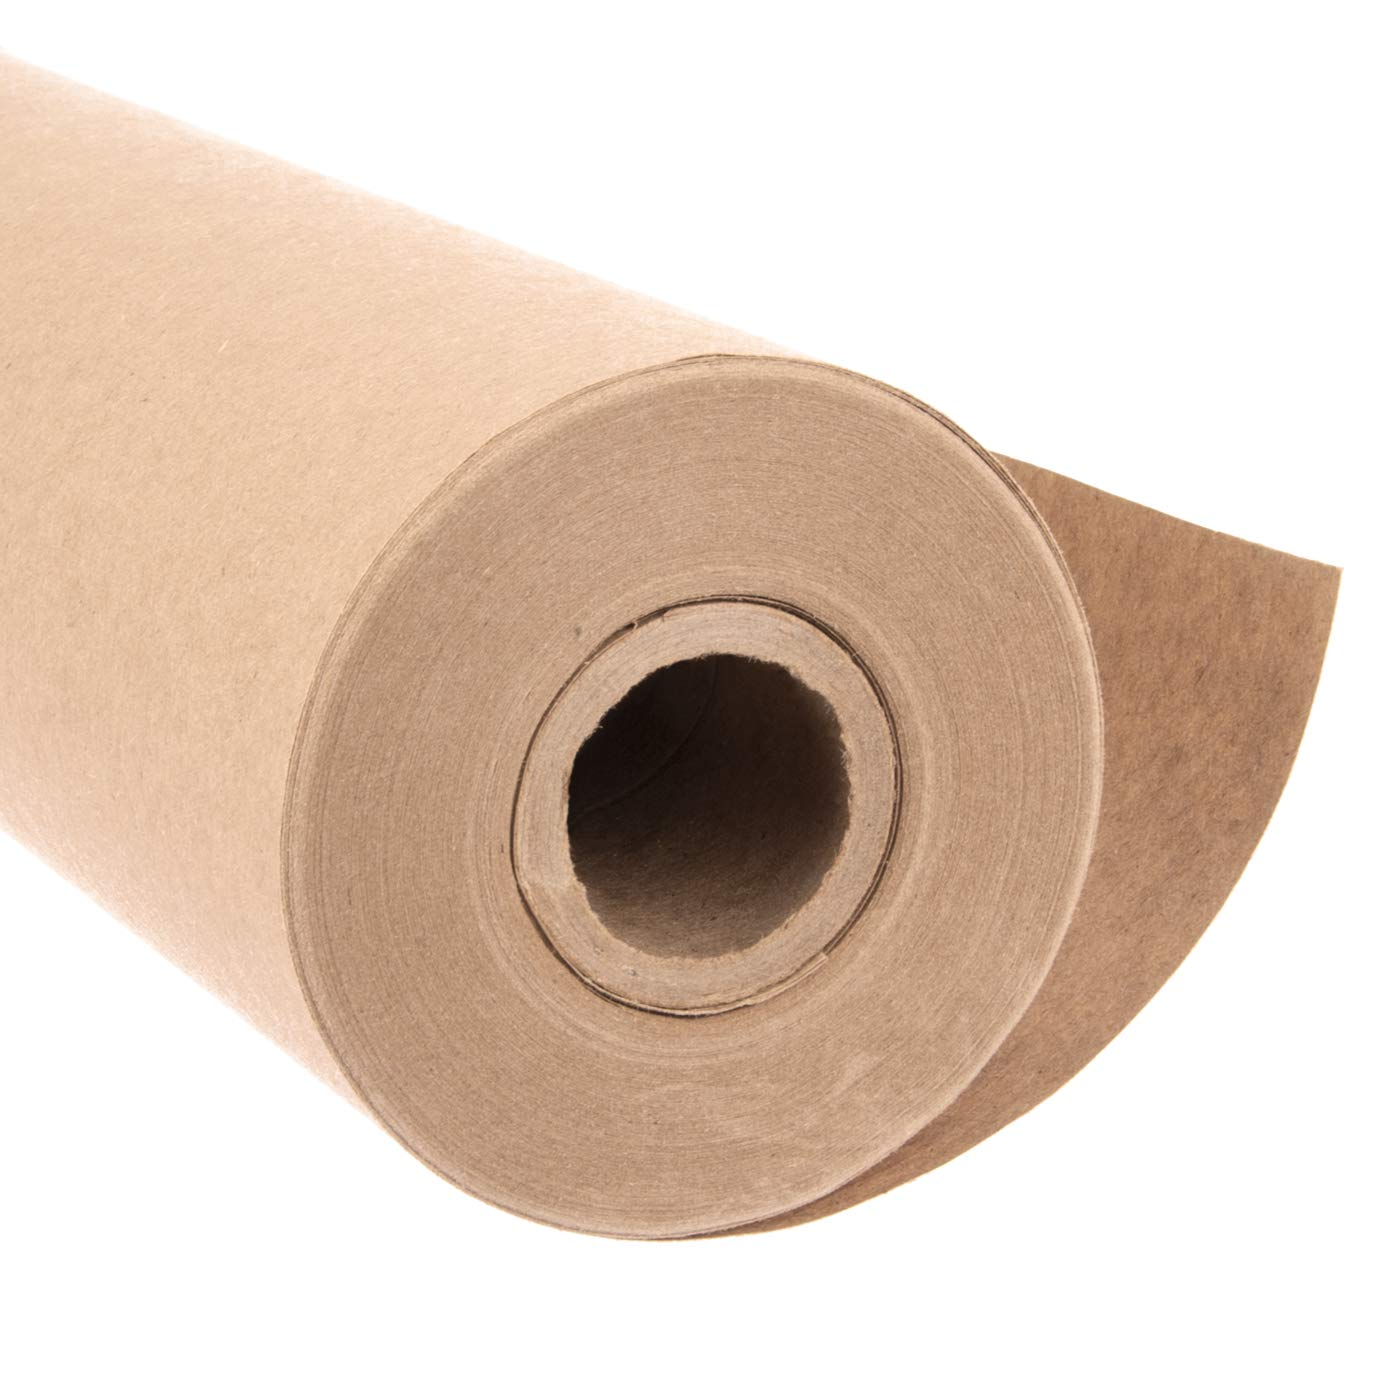 """Eco Kraft Wrapping Paper Roll (Jumbo Roll)   Biodegradable Recycled Material   Made in the USA   Multi-use: Natural Wrapping Paper, Table Cover/Runner, Moving, Packing & Shipping   30"""" x 1200"""" (100ft)"""